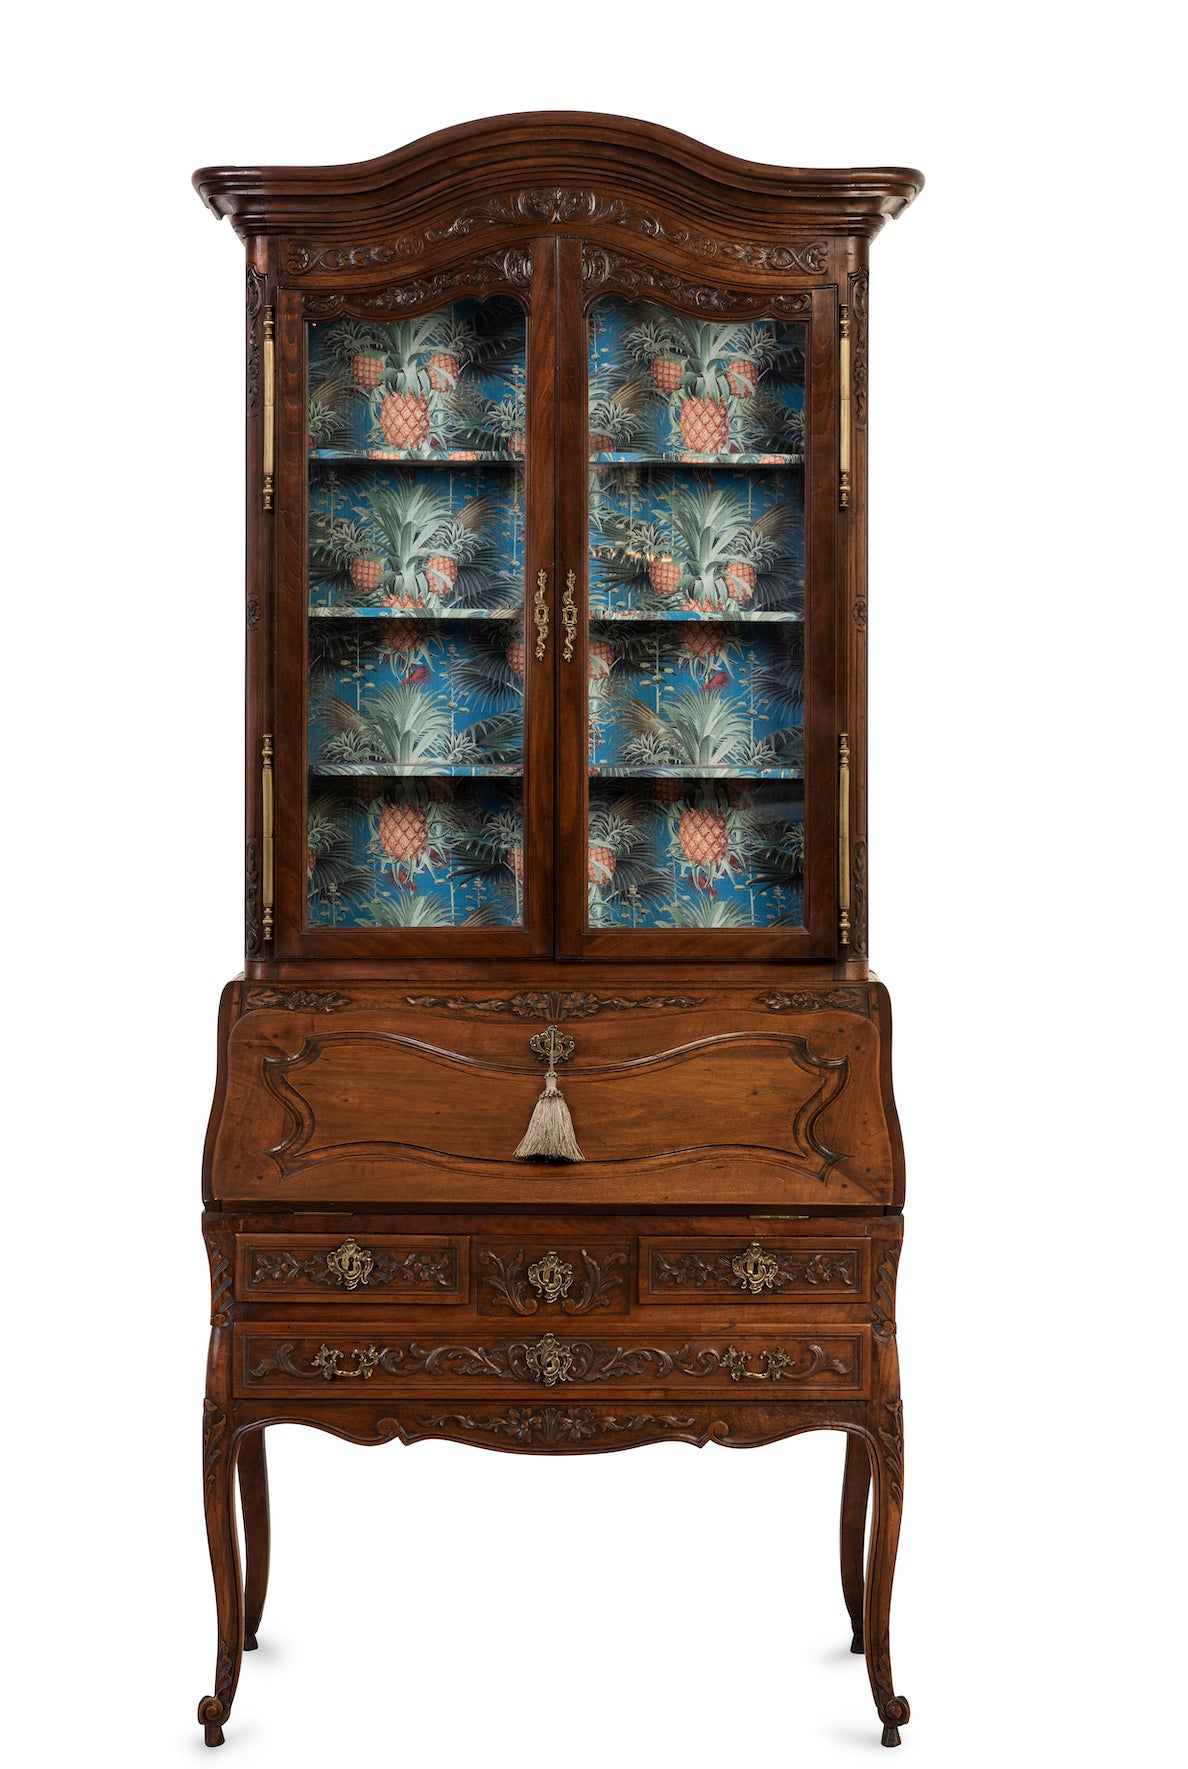 A finely carved walnut Louis XV style bureau-cabinet, French, 19th Century